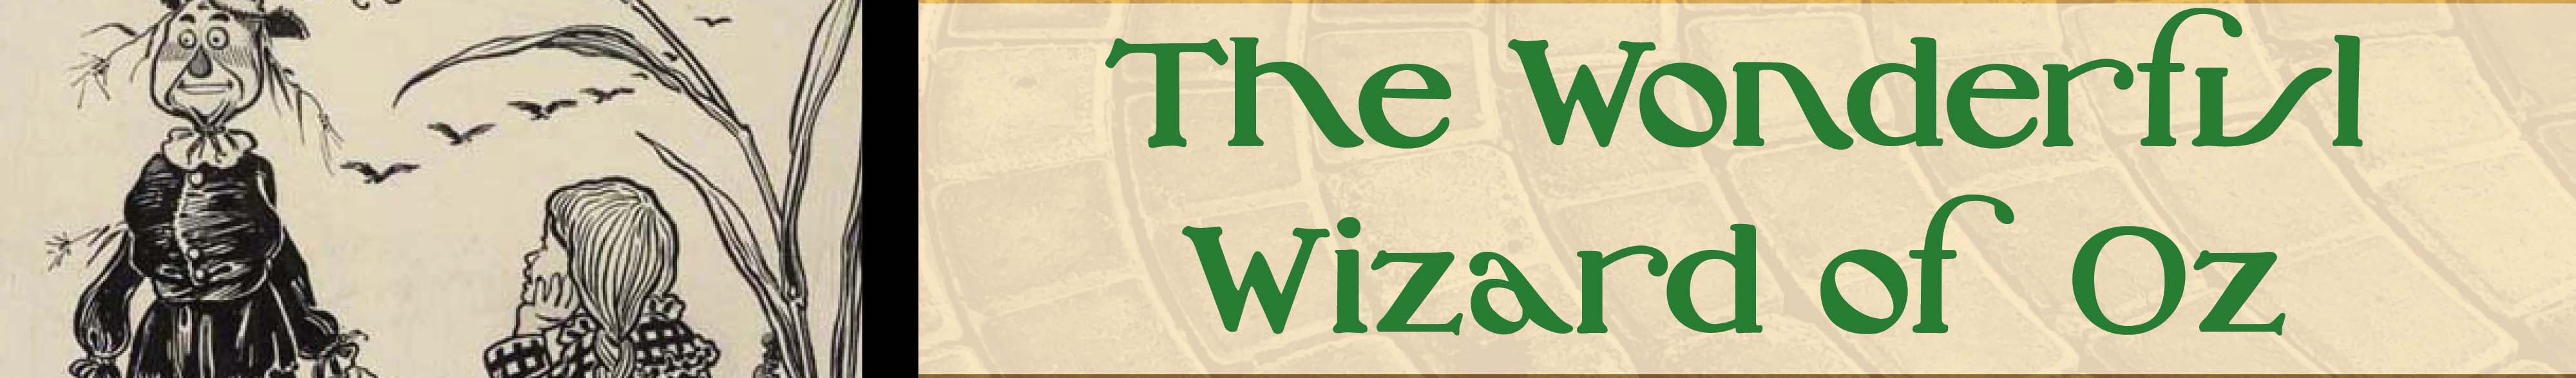 Wizard of Oz Promotional Materials